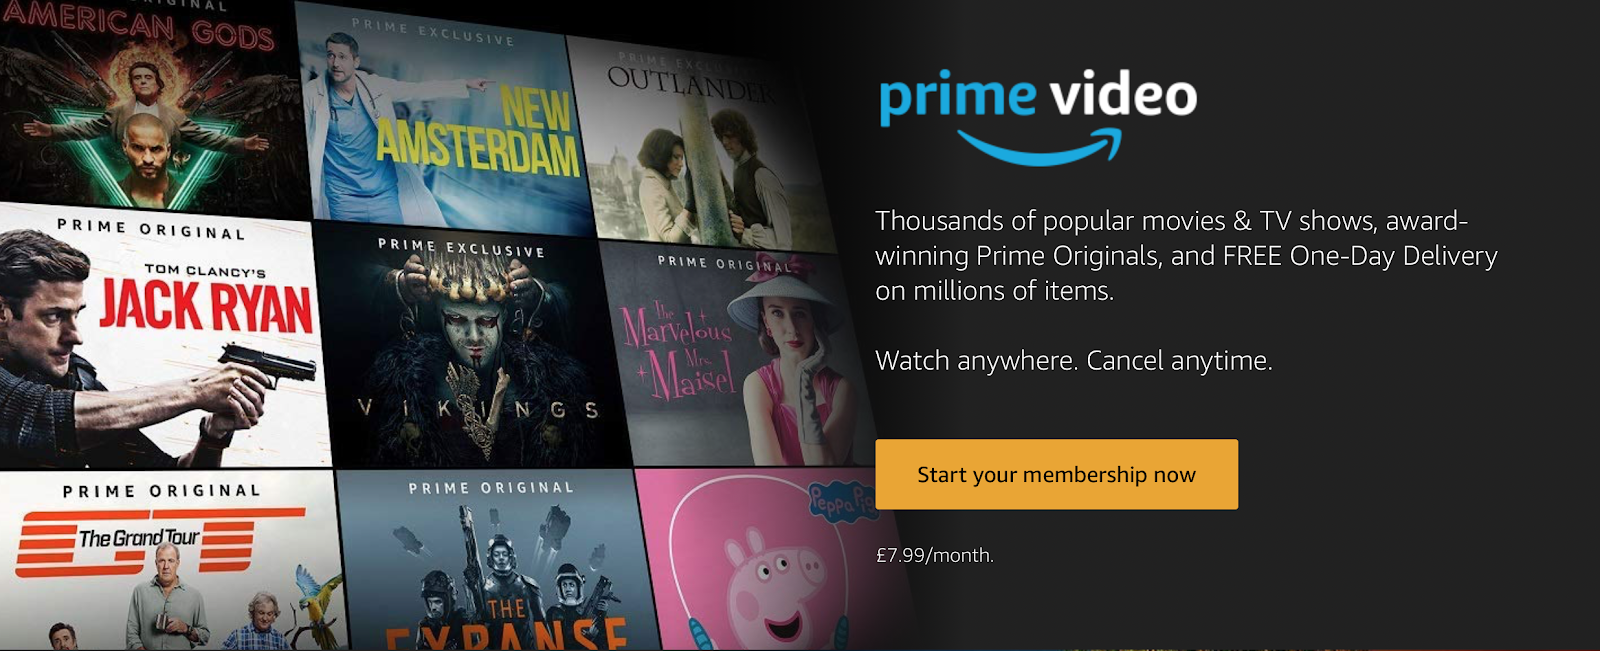 amazon prime gift, amazon prime free trial, amazon prime video gift